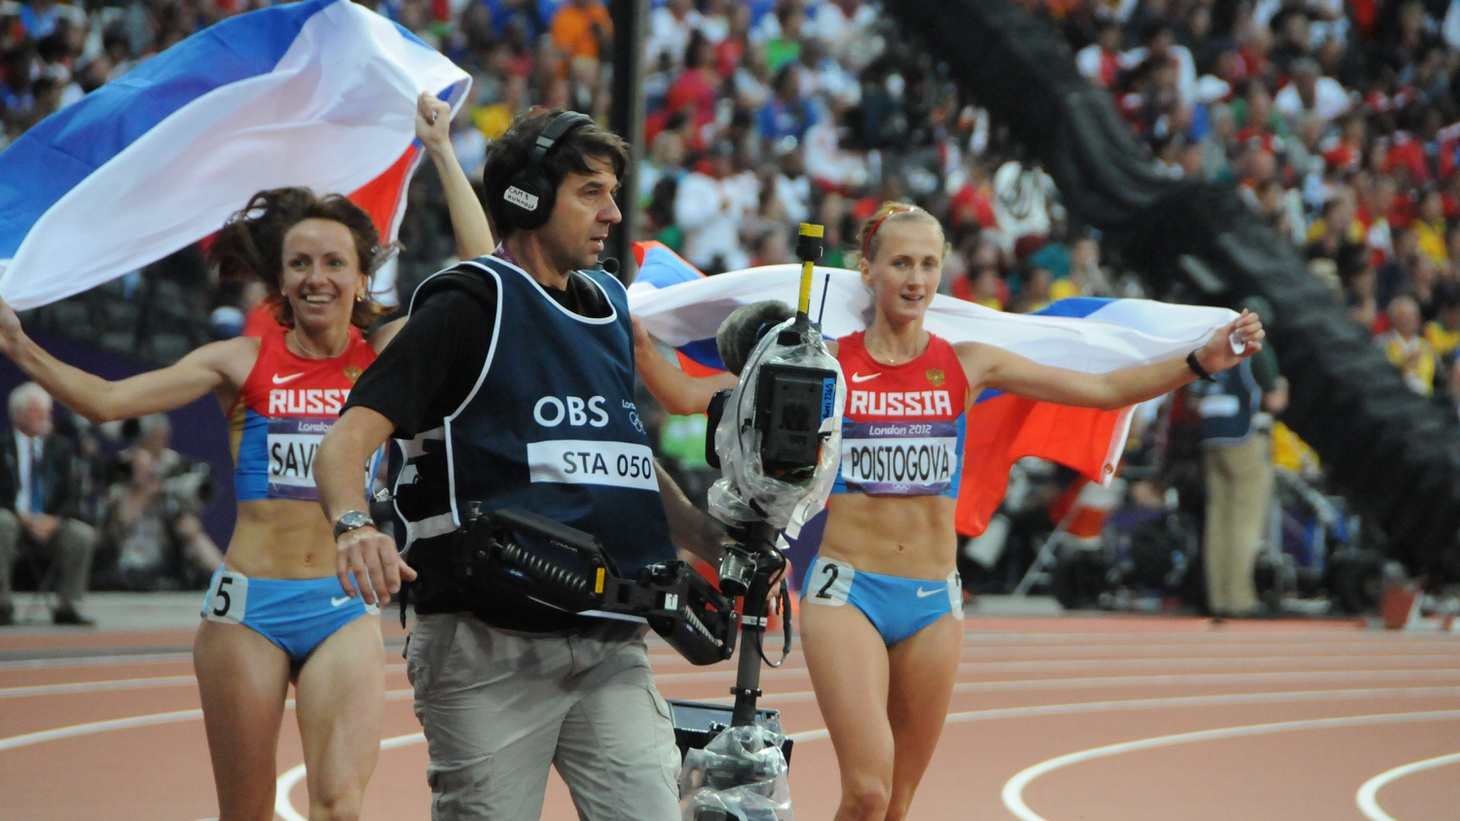 One week ago, the  World Anti-Doping Agency reported  that Russian officials conspired to cover up systematic, state sponsored doping of track and field athletes. The International Association of Athletic Federations quickly followed up with a  provisional suspension .